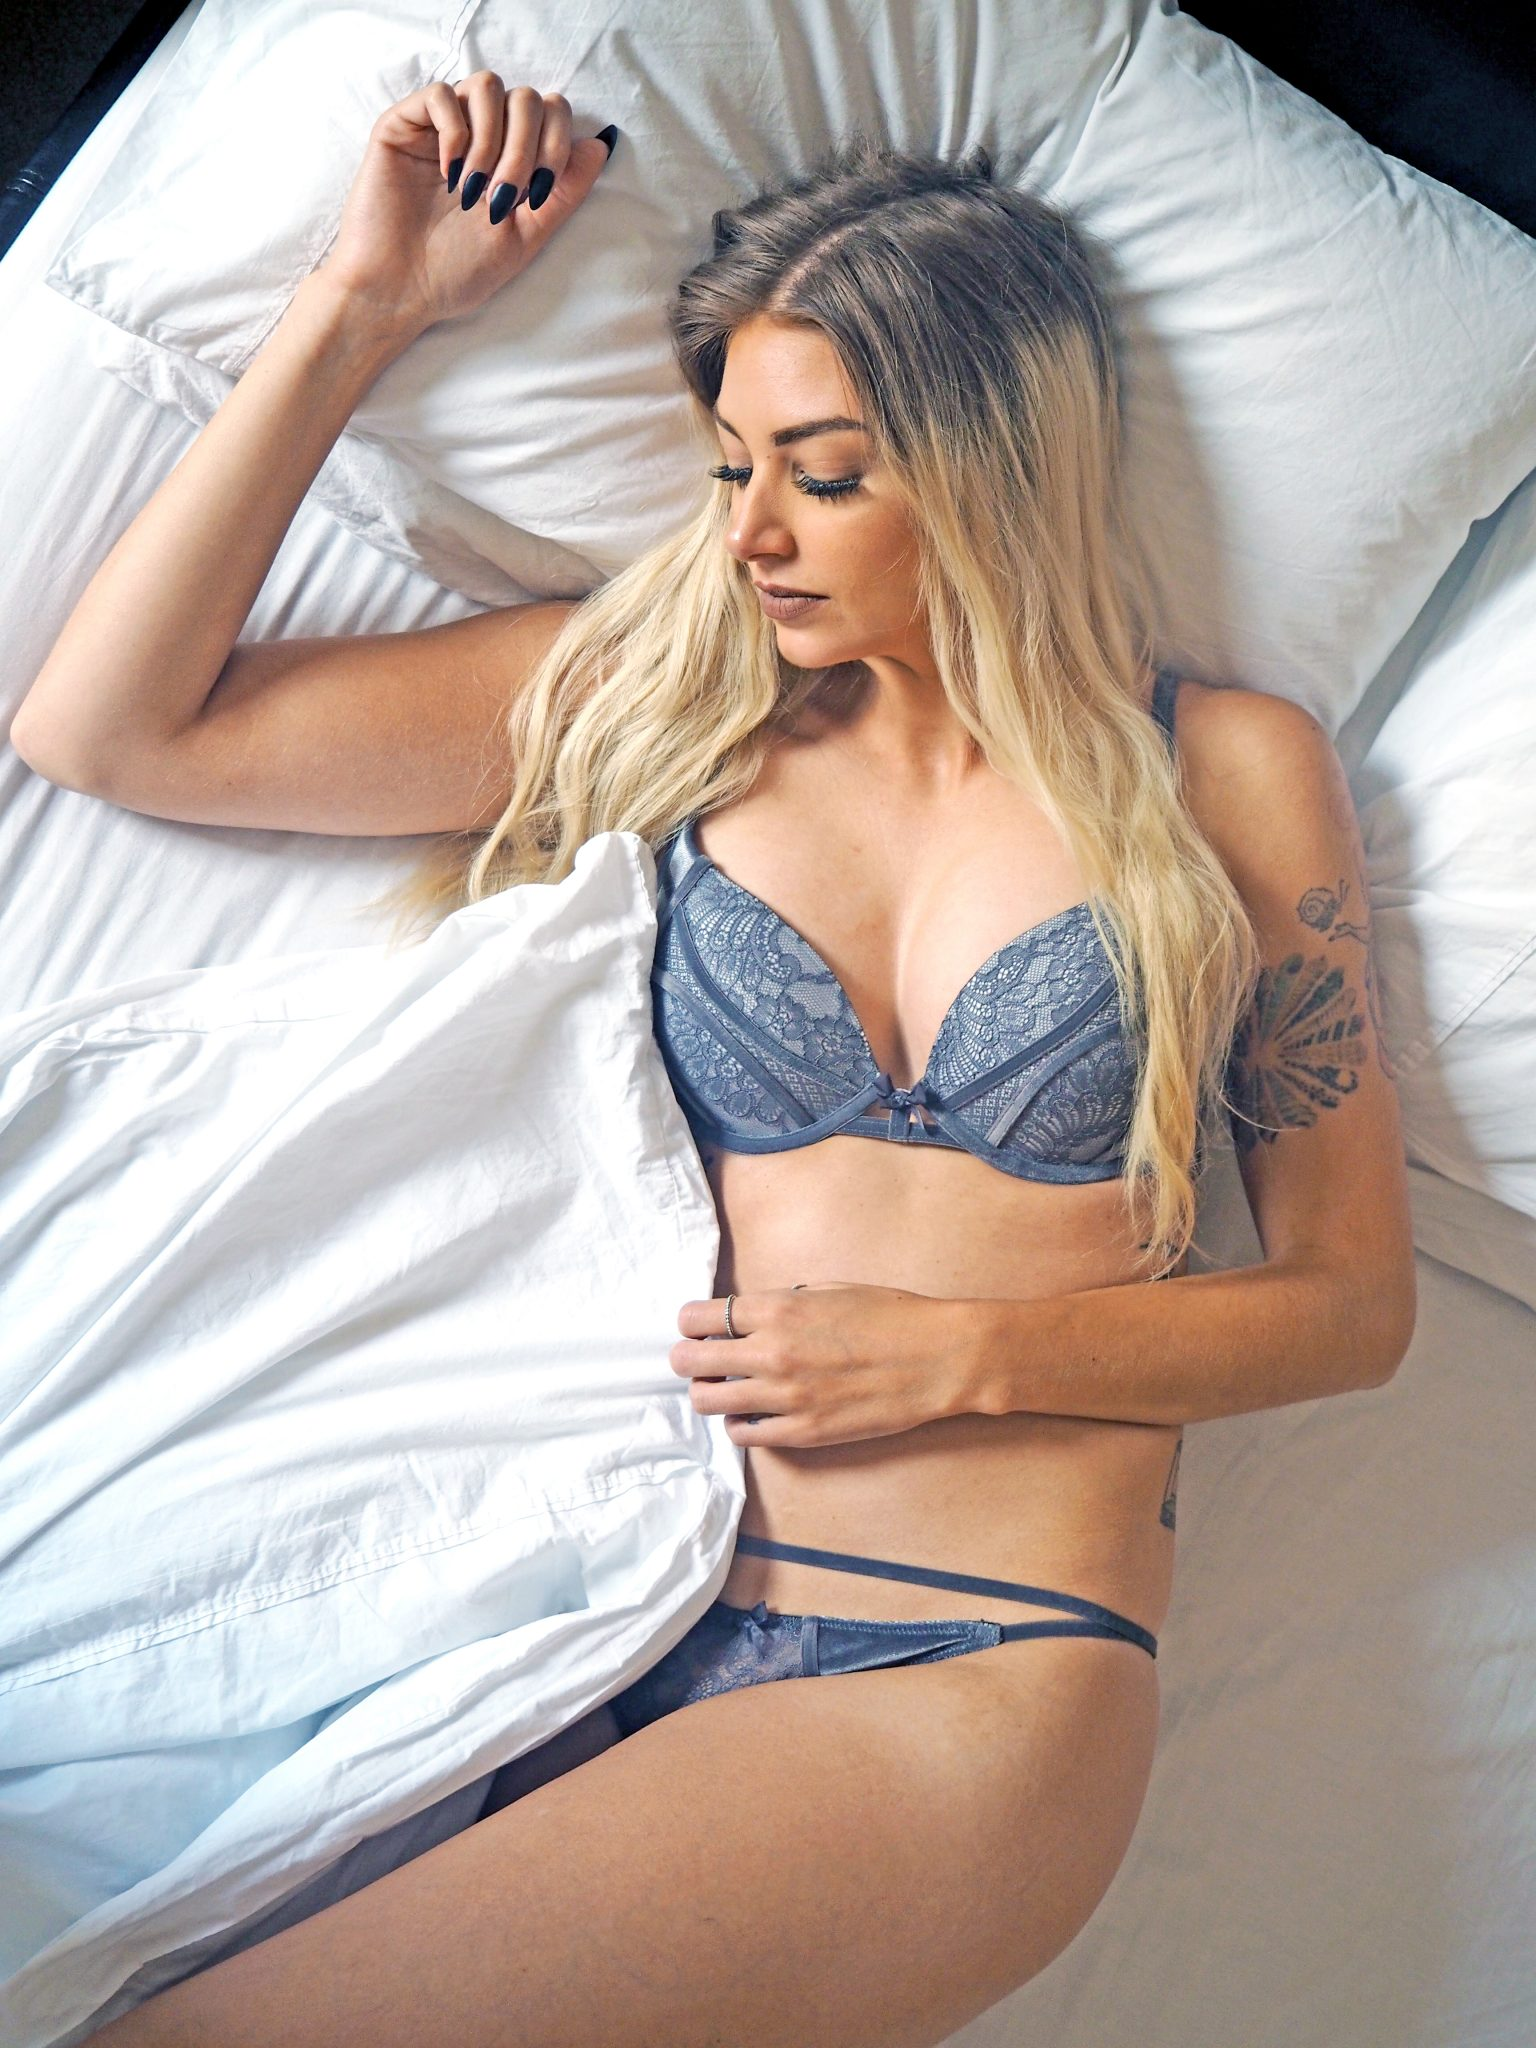 Laura Kate Lucas - Manchester Fashion, Fitness and Food Blogger | HUNKEMÖLLER X PAMELA REIF Underwear Collection Outfit